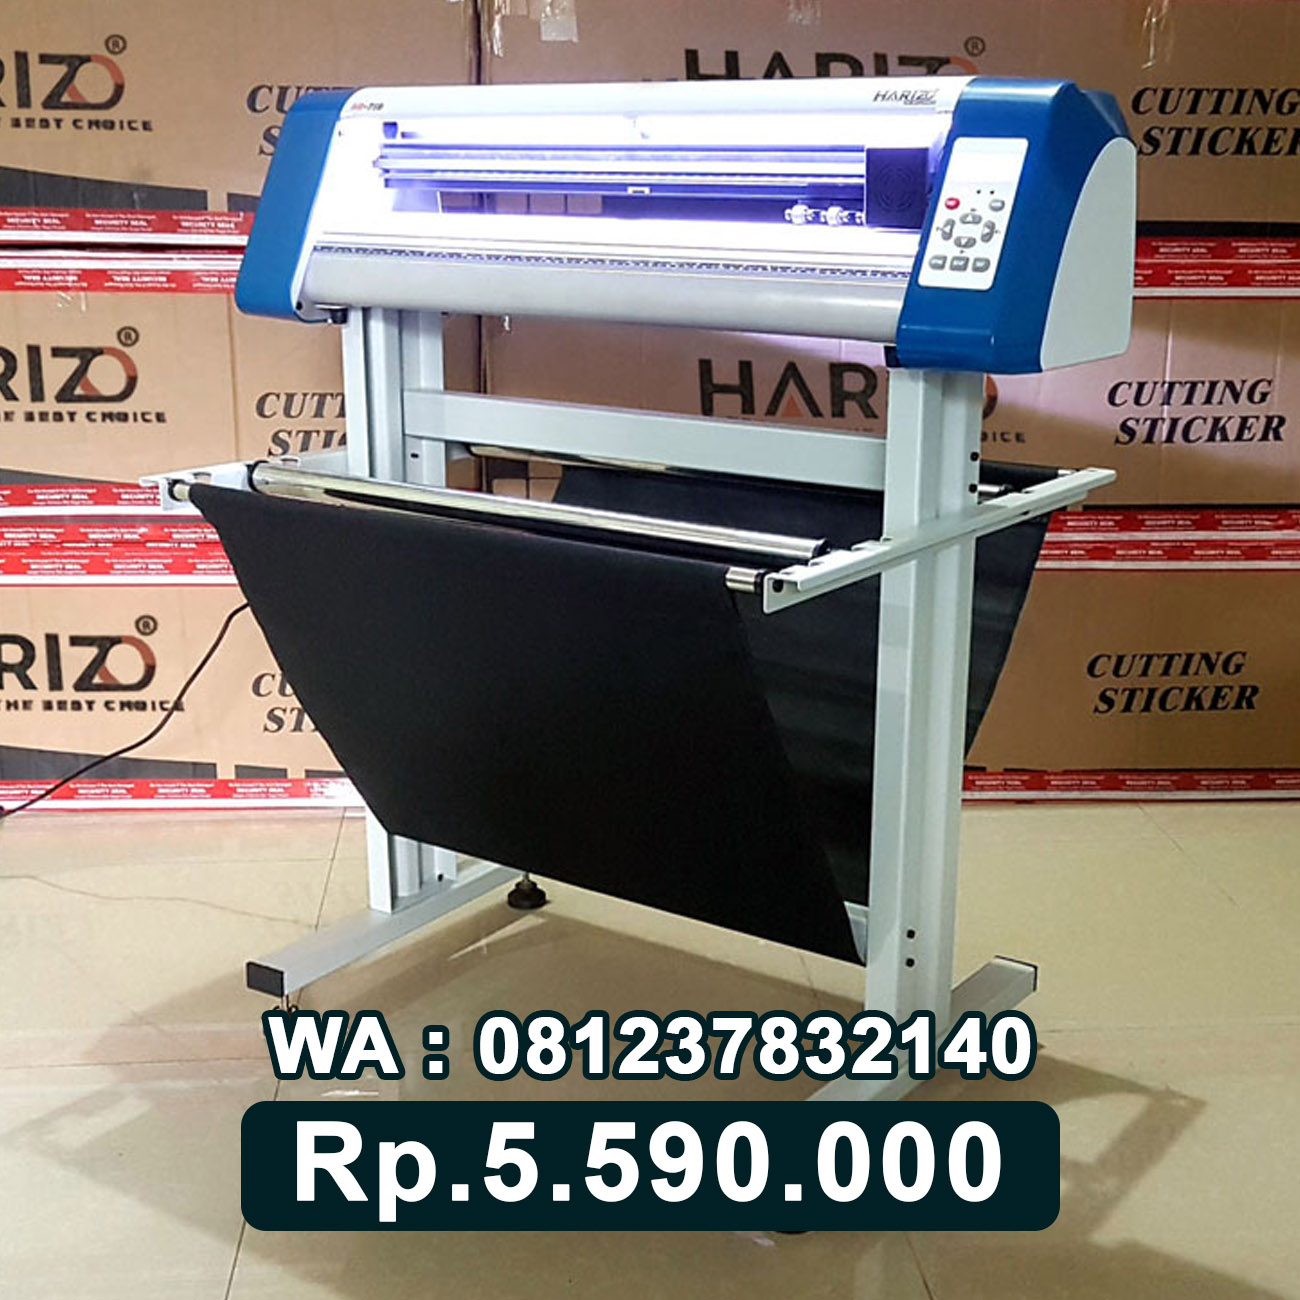 JUAL MESIN CUTTING STICKER HARIZO 720 Metro